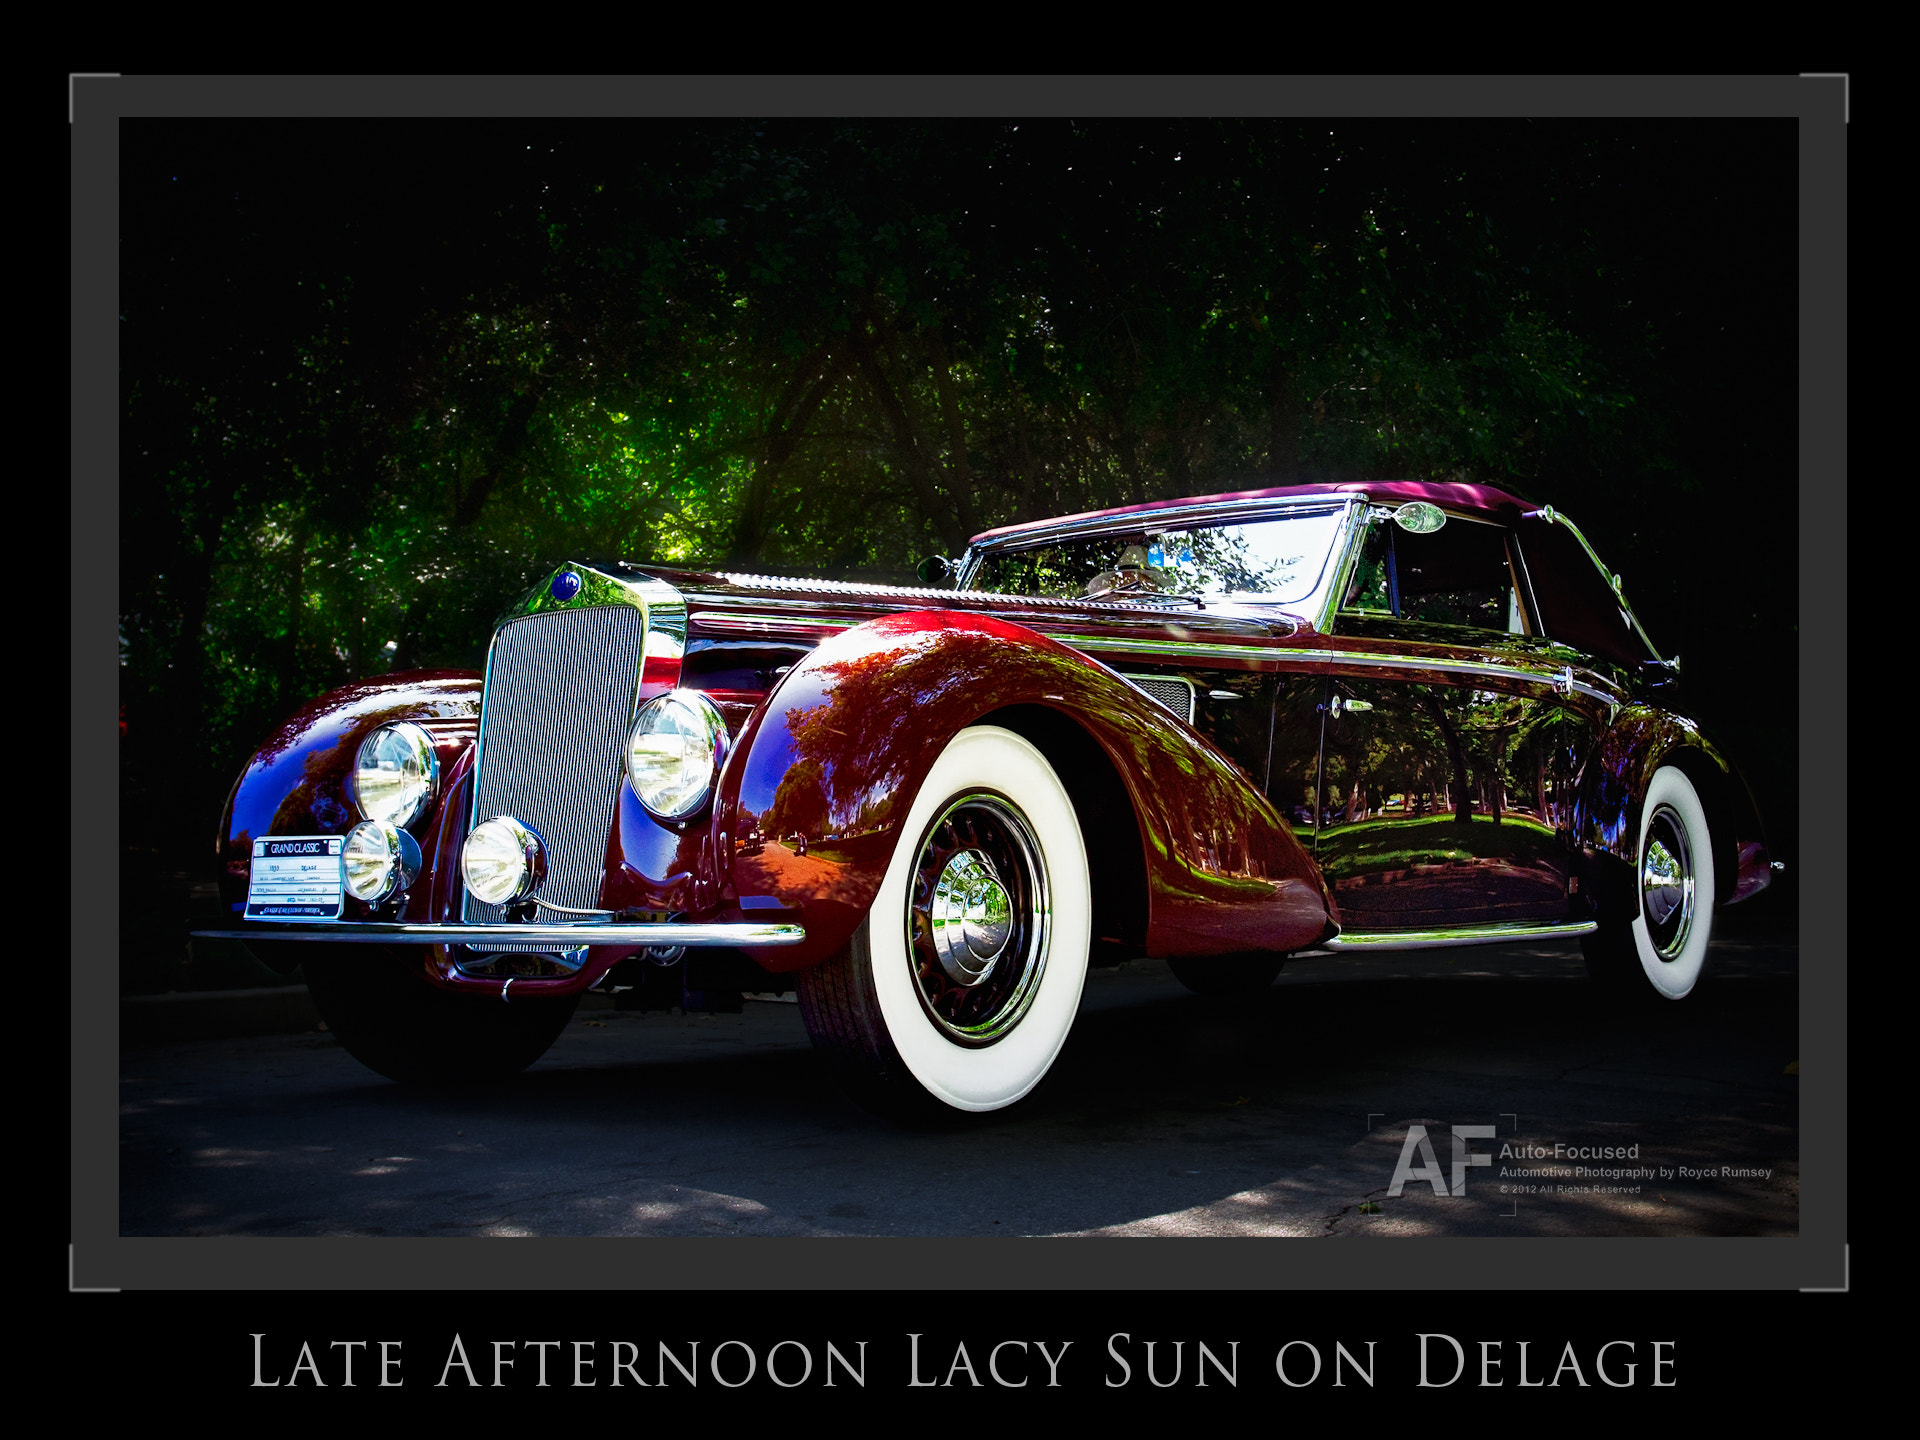 Photograph Late Afternoon Lacy Park Sun on Delage by Royce Rumsey on 500px